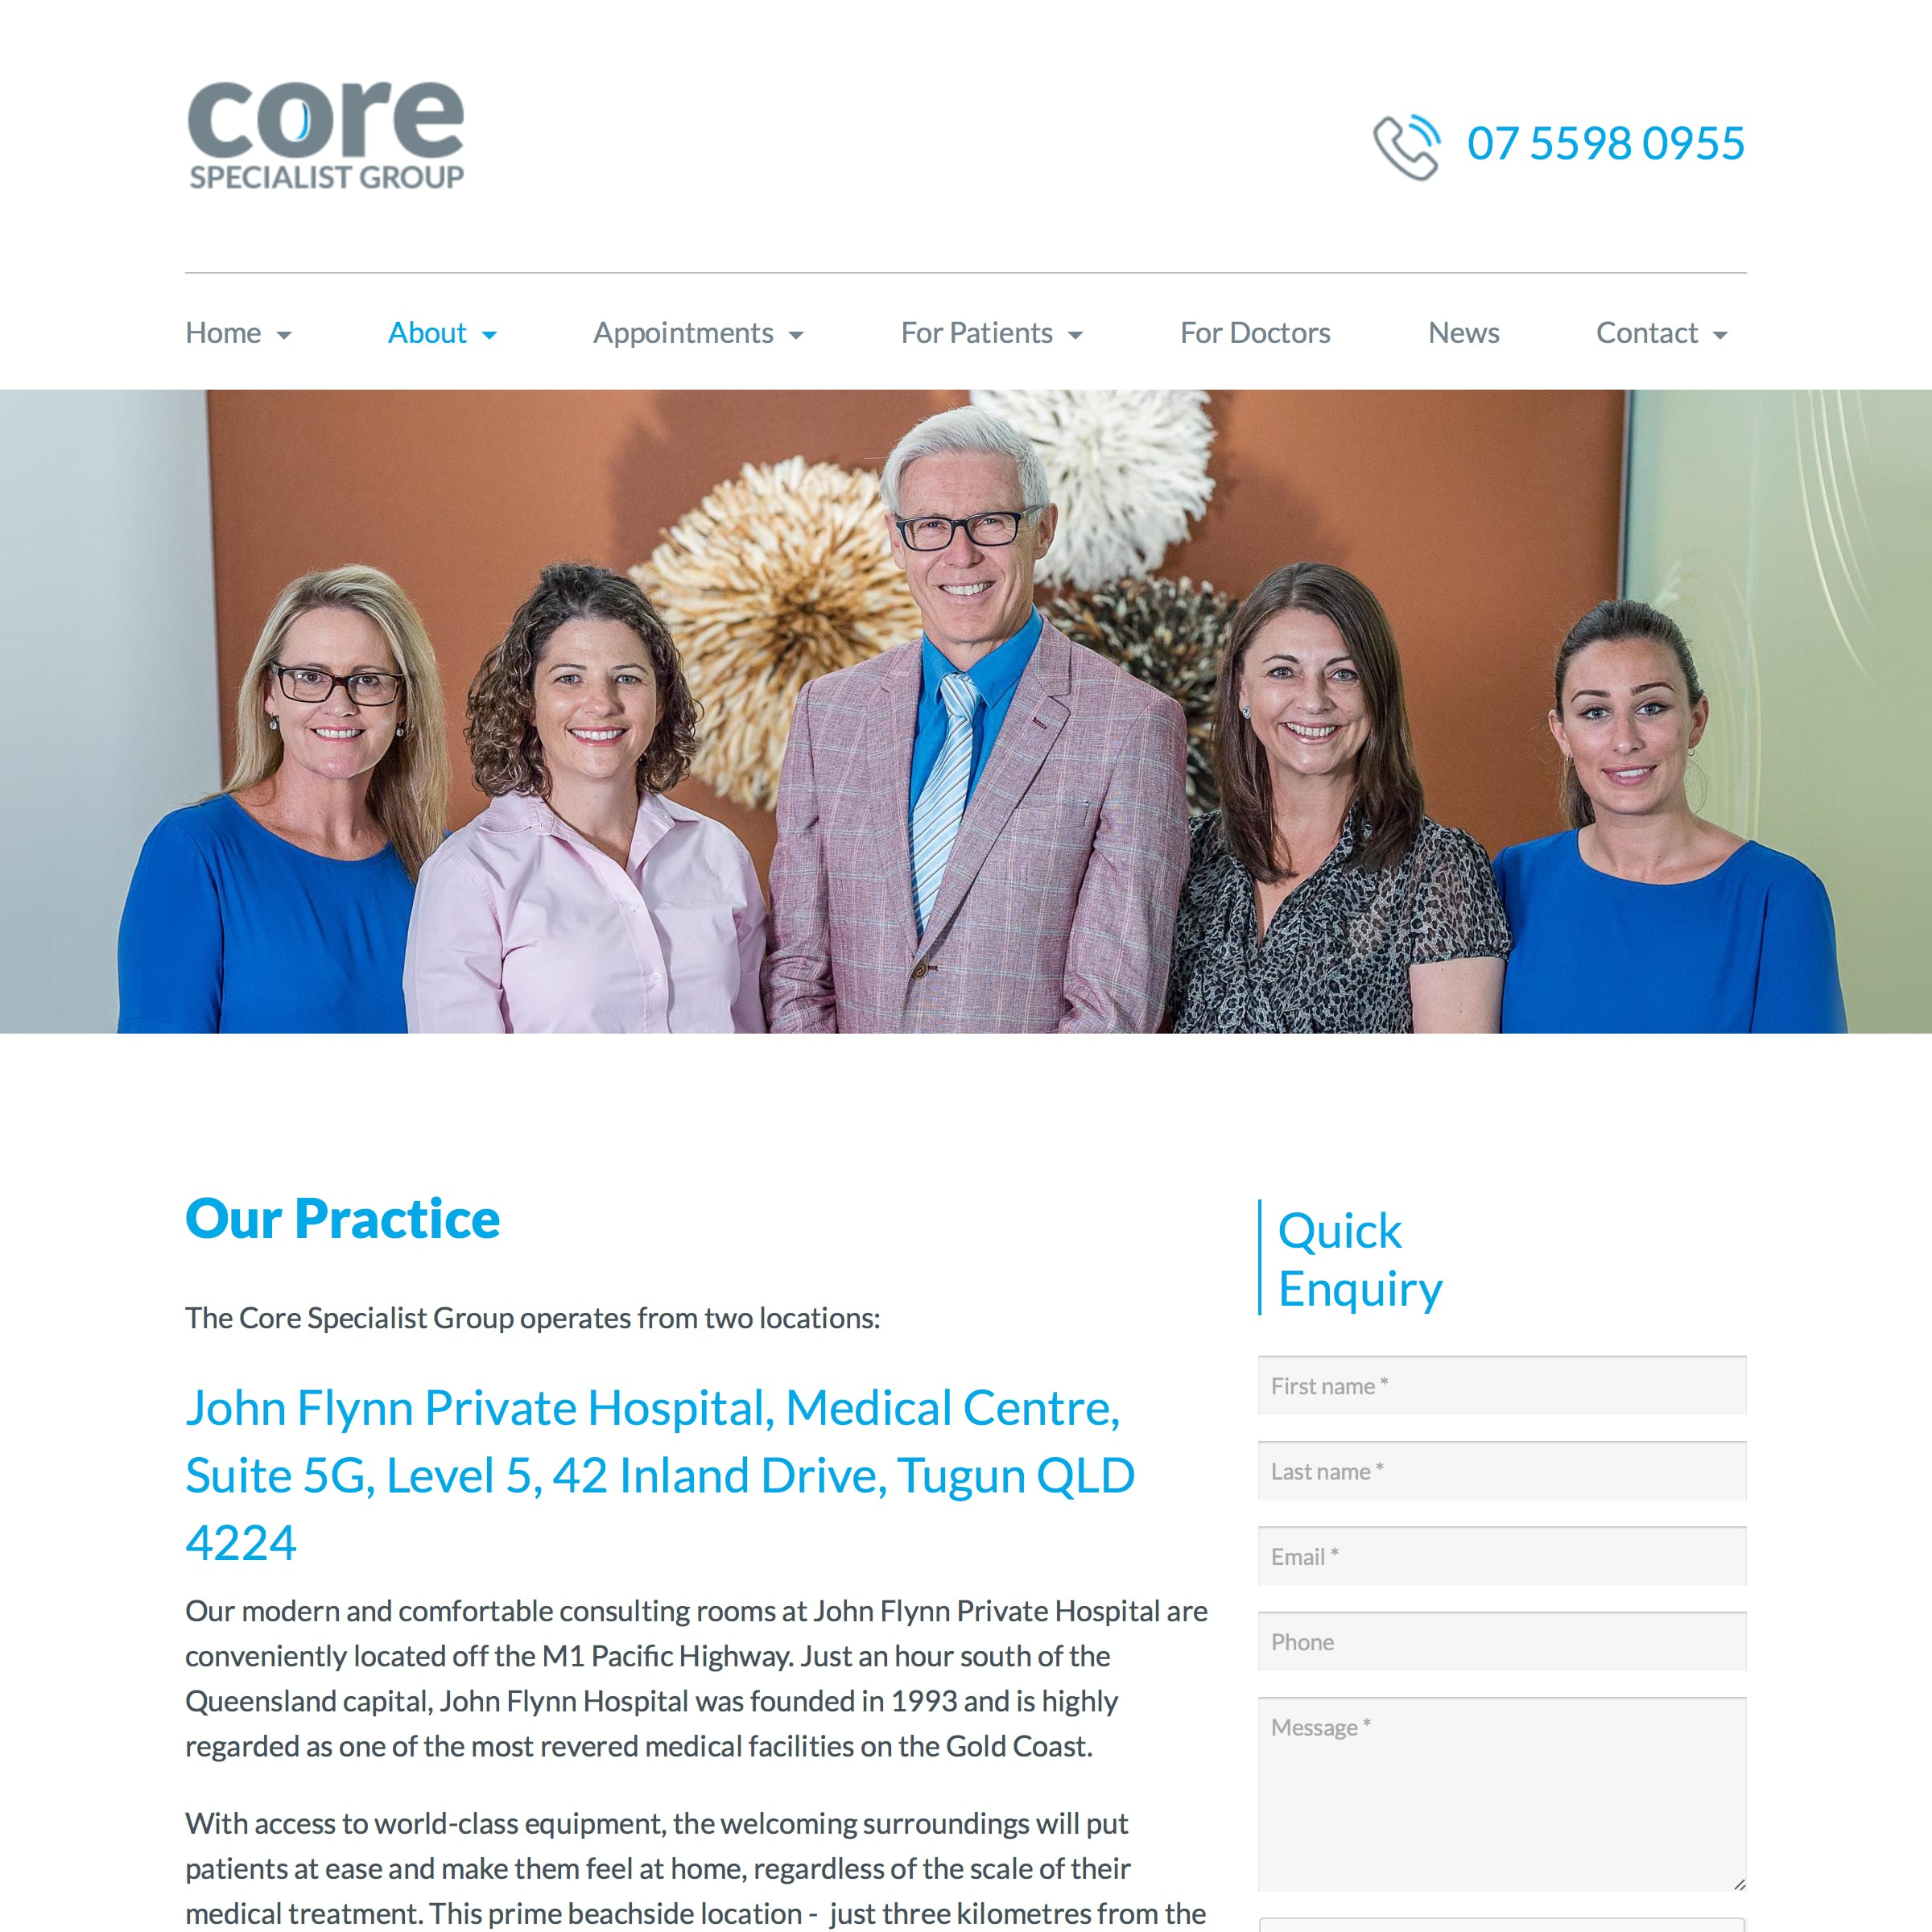 Core Specialist Group - Our Practice